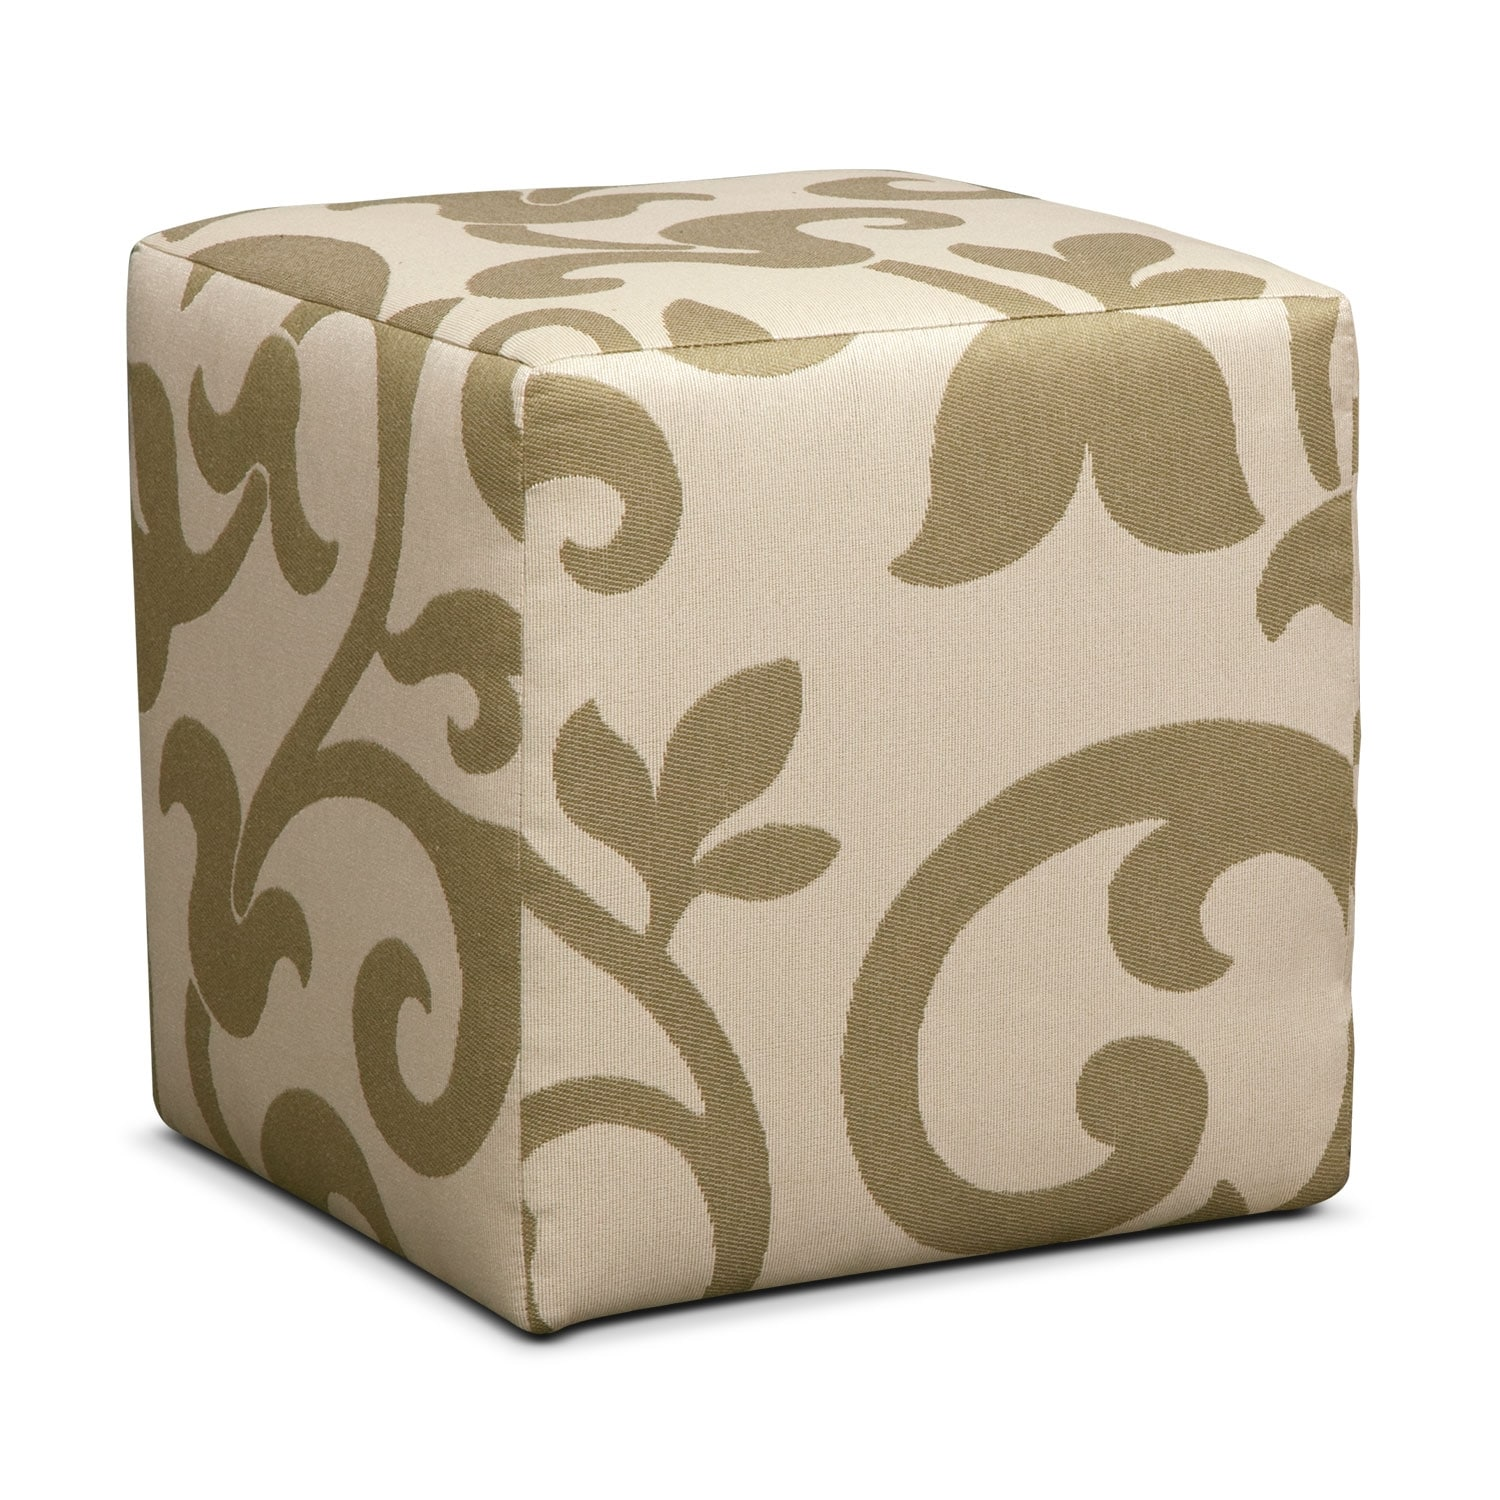 Living Room Furniture - Colette Cube Ottoman - Khaki